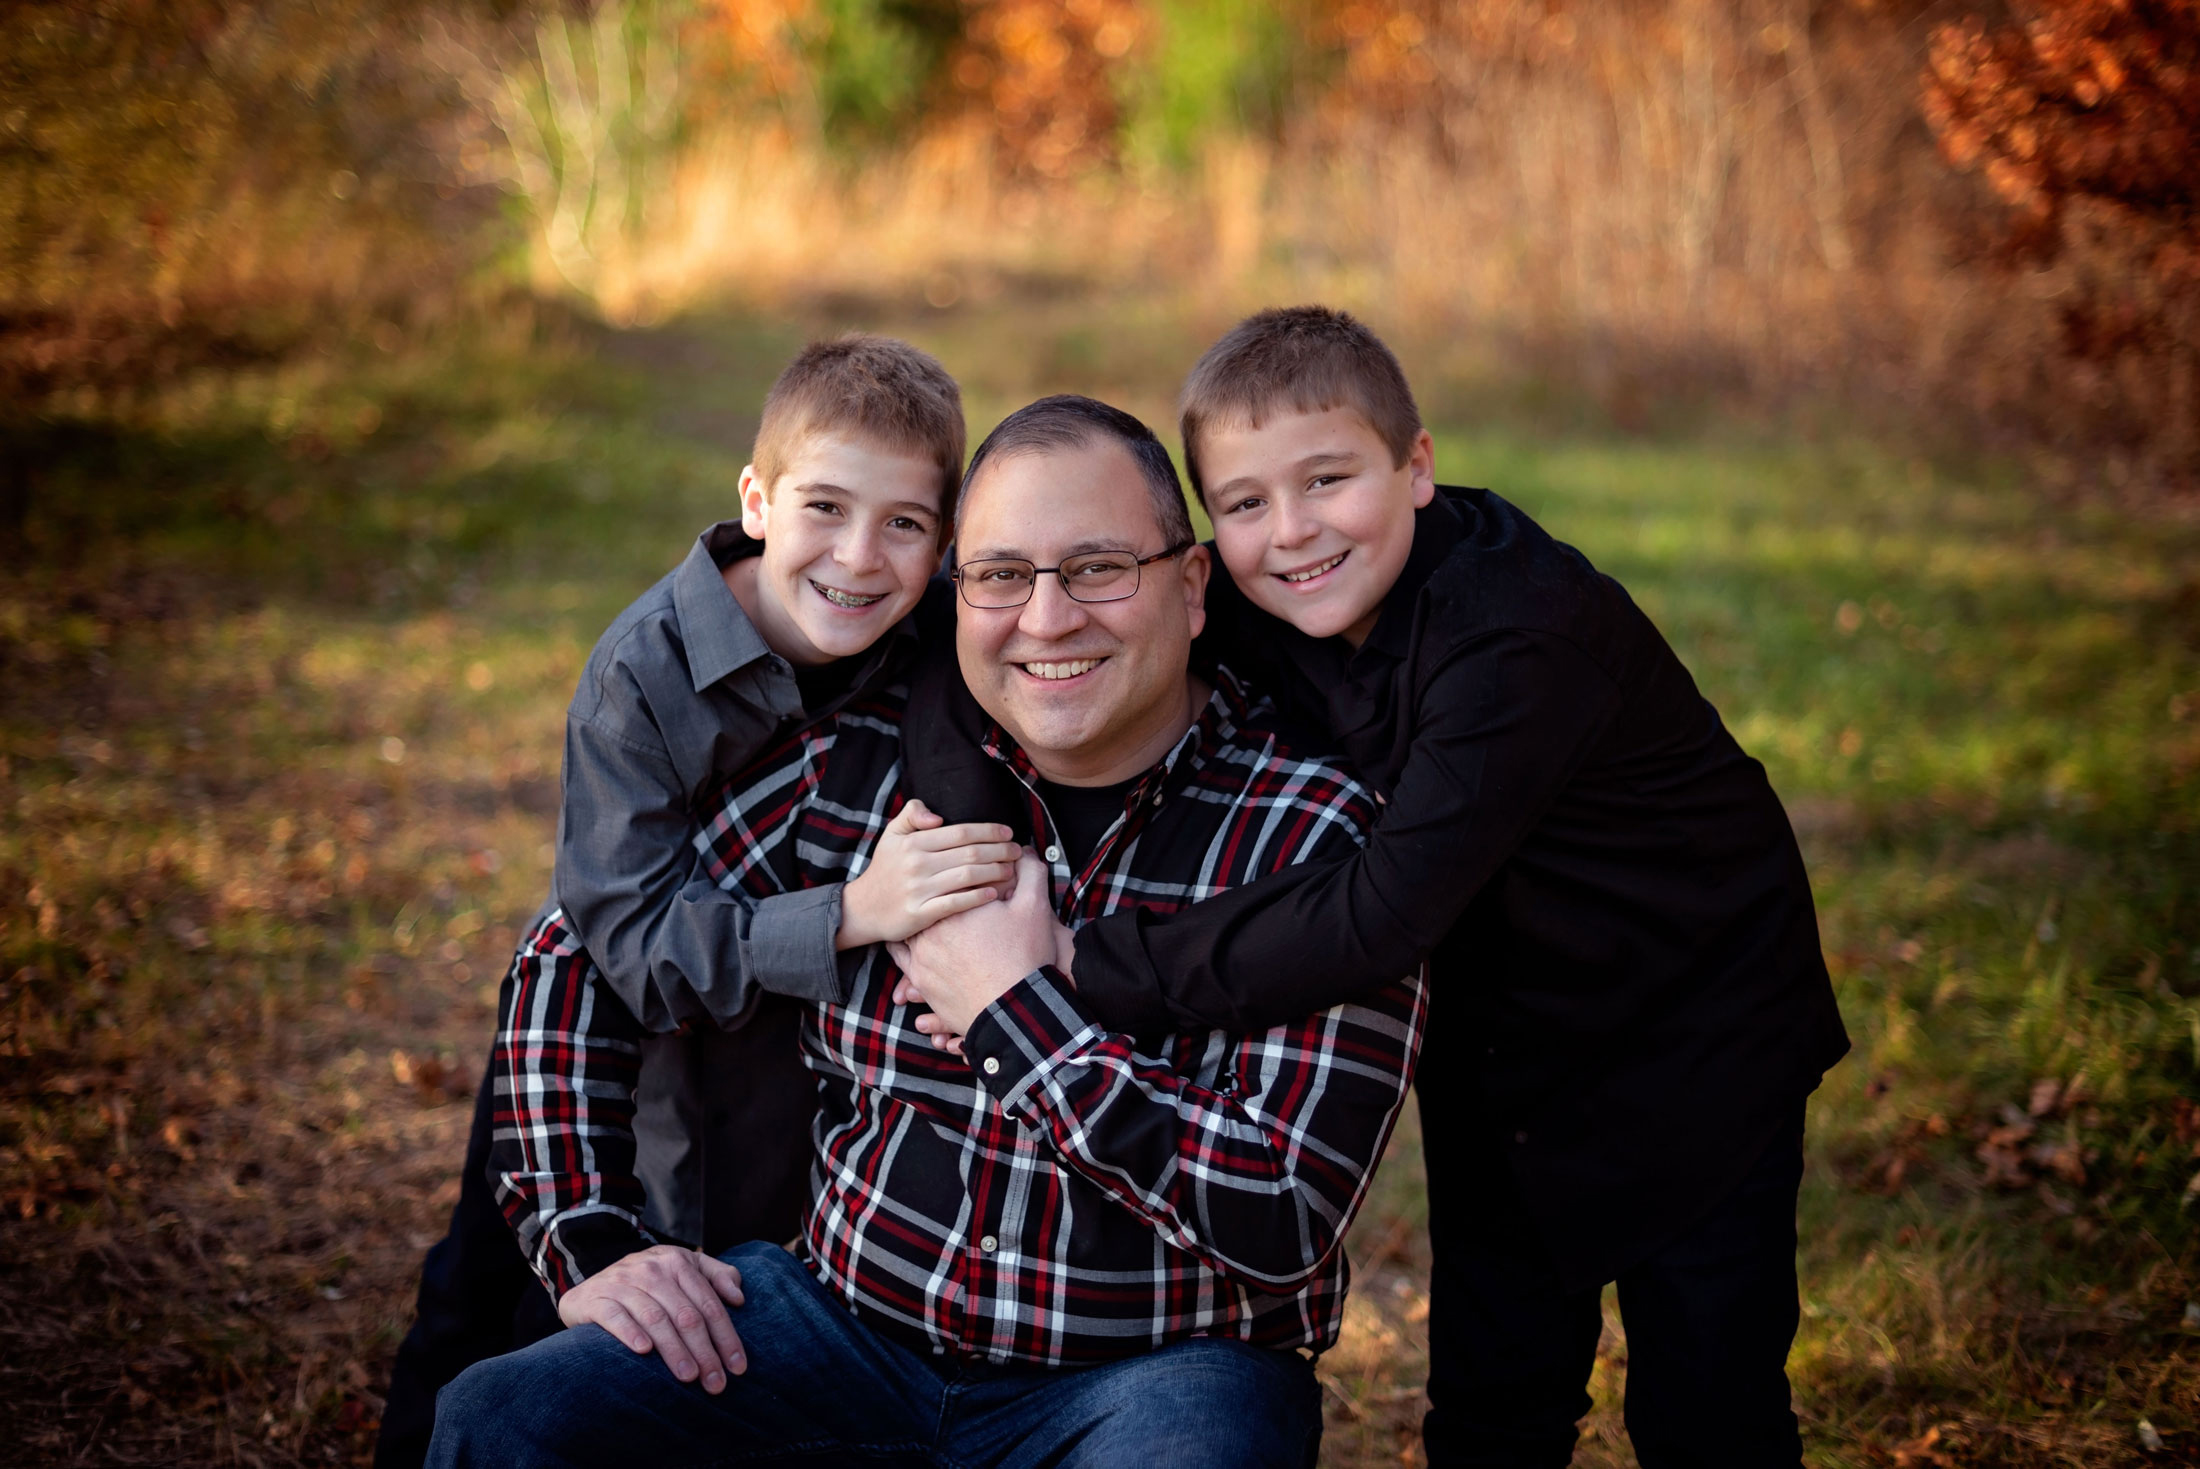 Family-Portrait-Fall2018-Central-MA.jpg